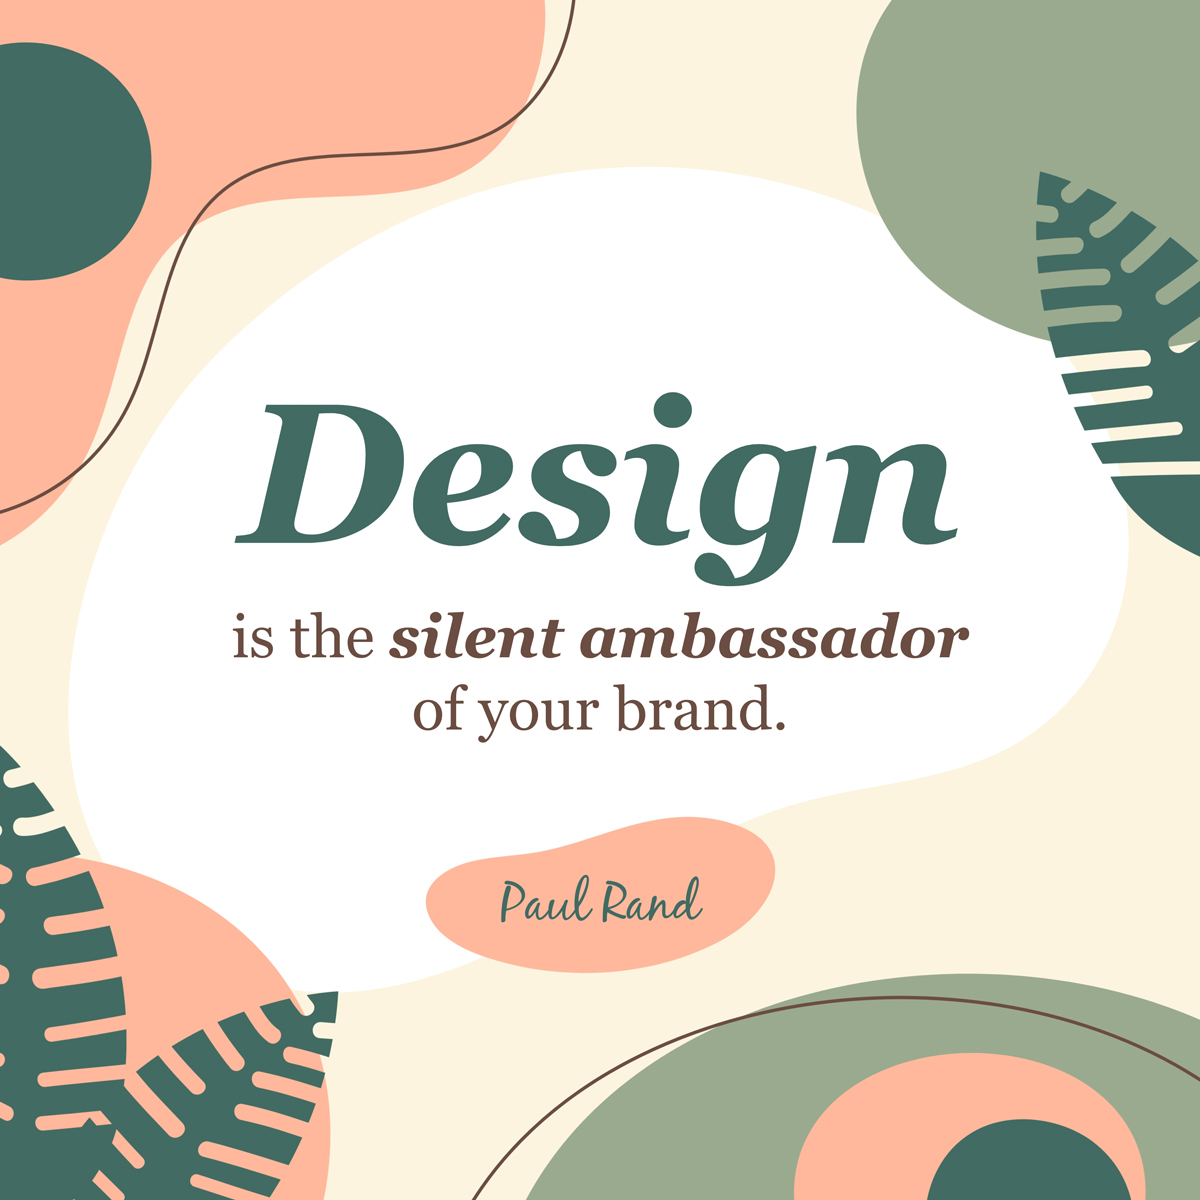 A quote about branding by Paul Rand.